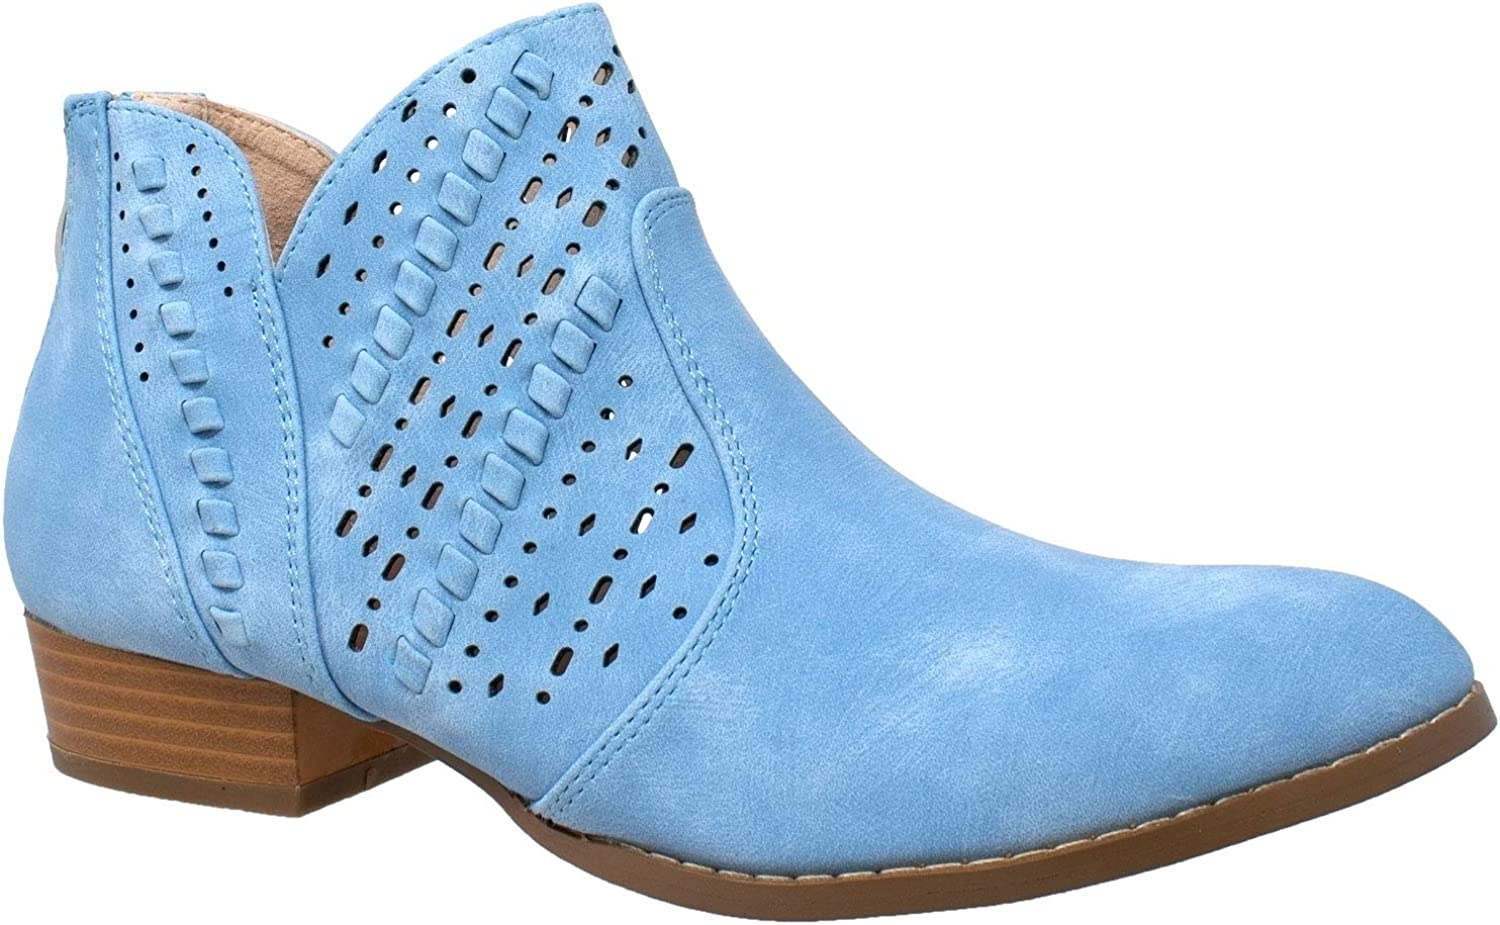 SOBEYO Womens Ankle Boots Western Block Heel Bootie Perforated Cutout shoes